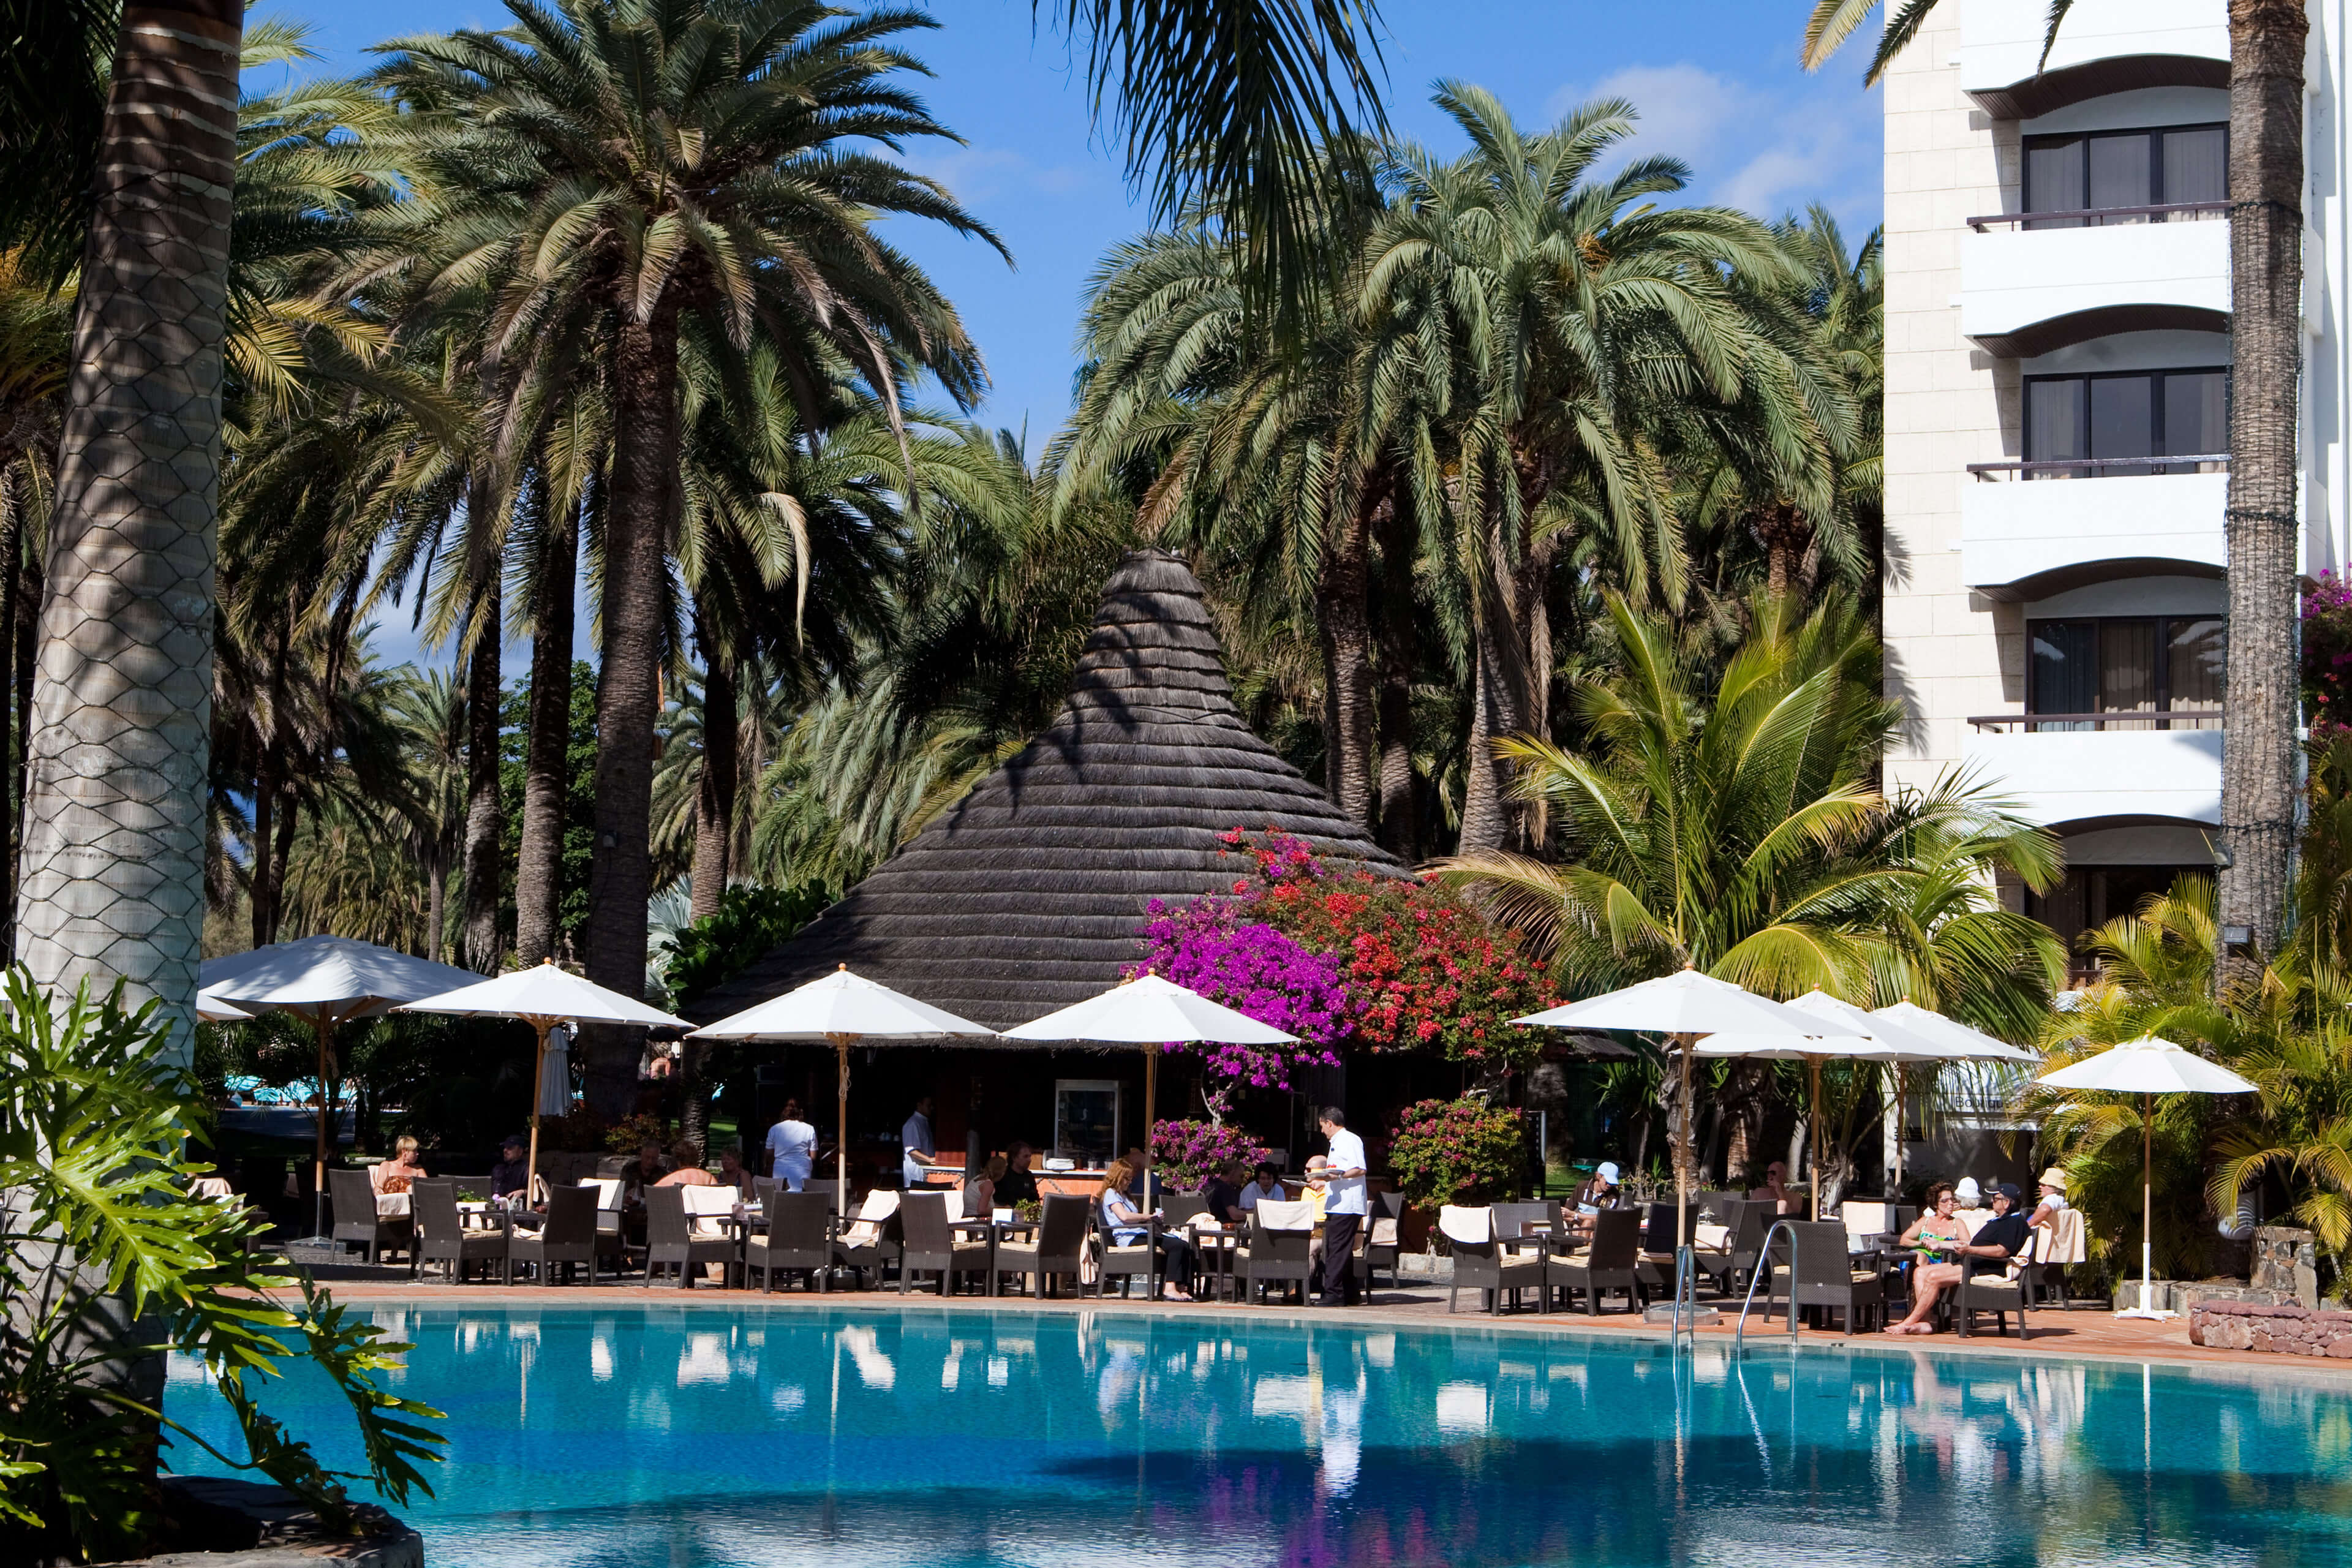 Bar Africano serves its food and beverages next to the pool